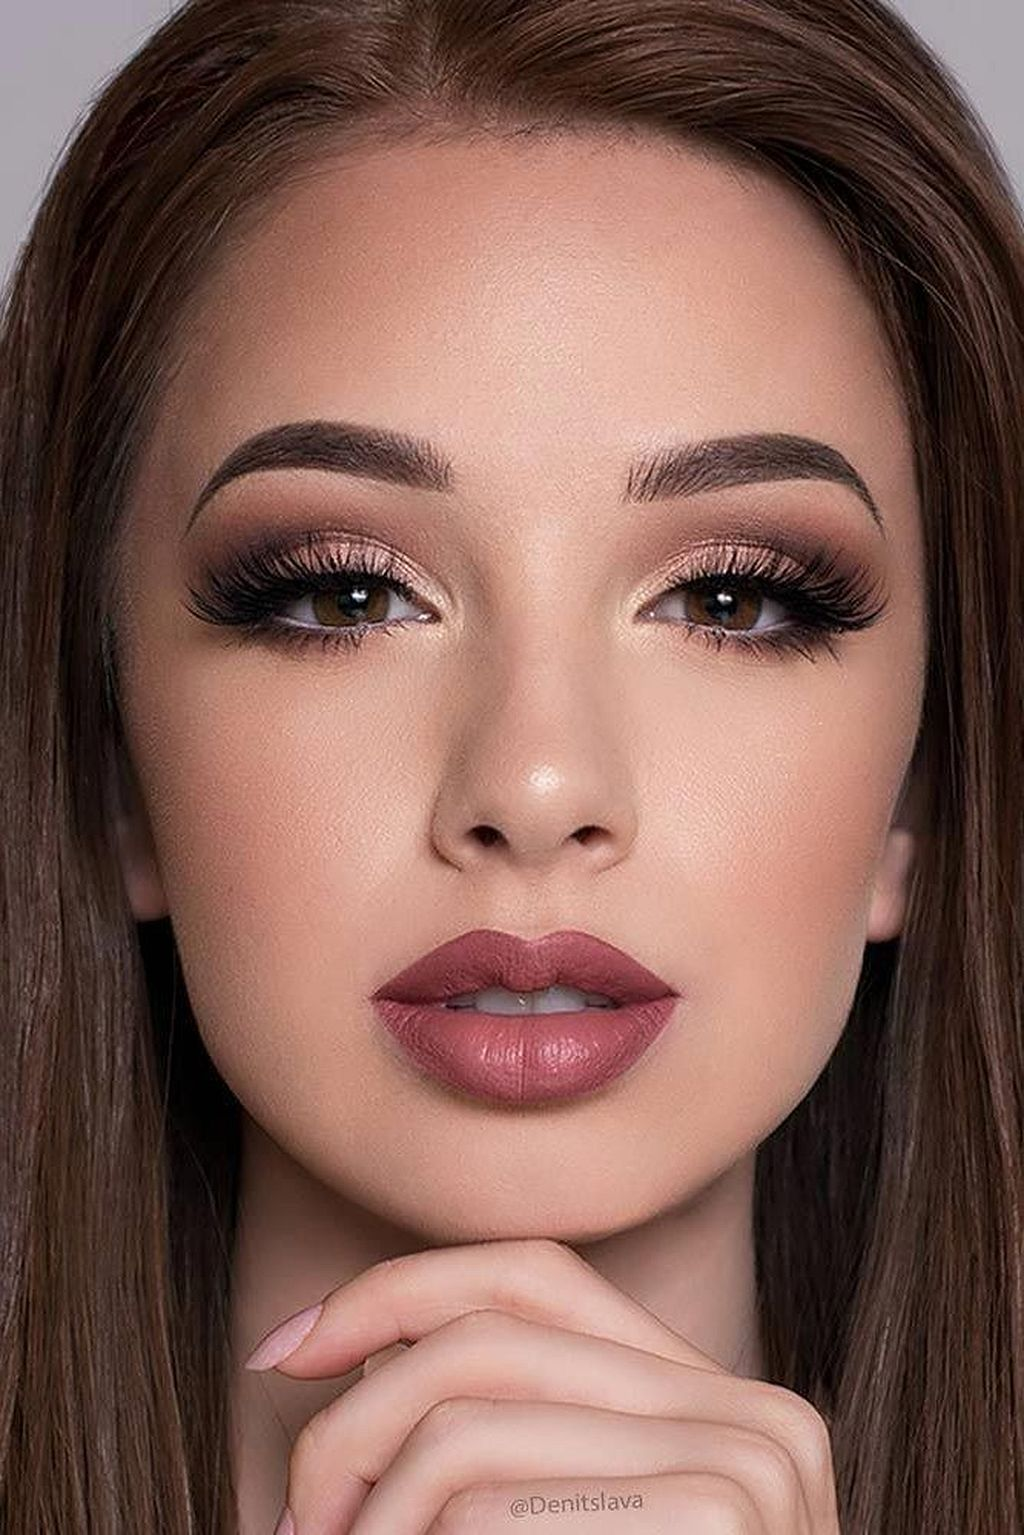 Pin by fah on make up pinterest makeup makeup looks and wedding